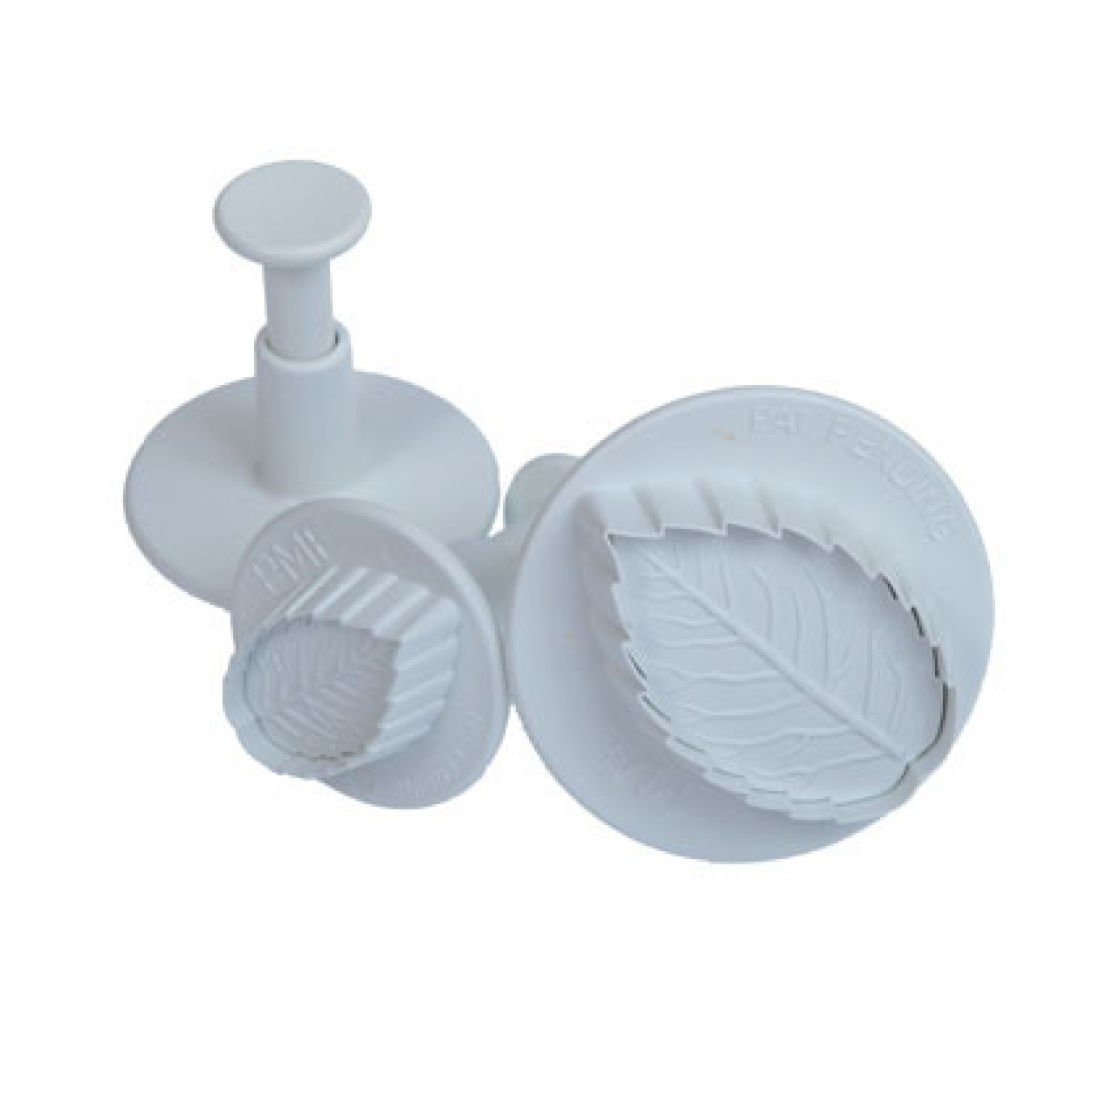 PME Veined Rose Leaf Plunger Cutter